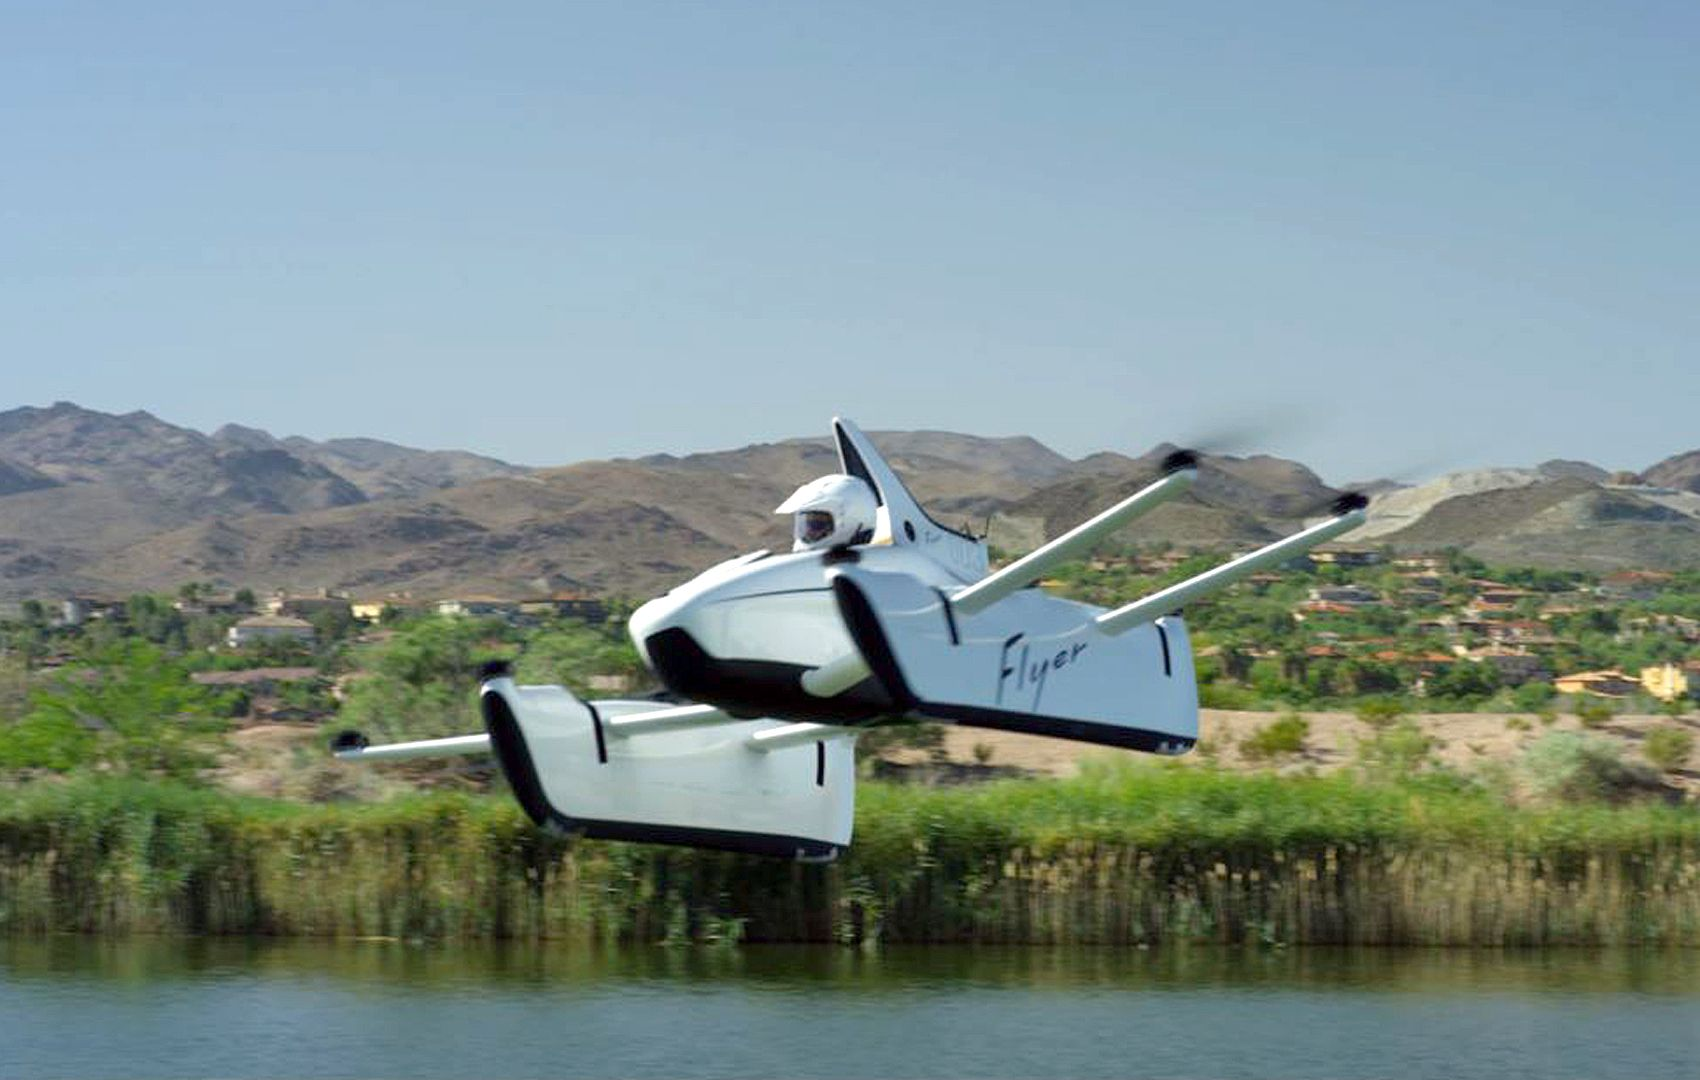 The Kitty Hawk Flyer is an allelectric aircraft. The